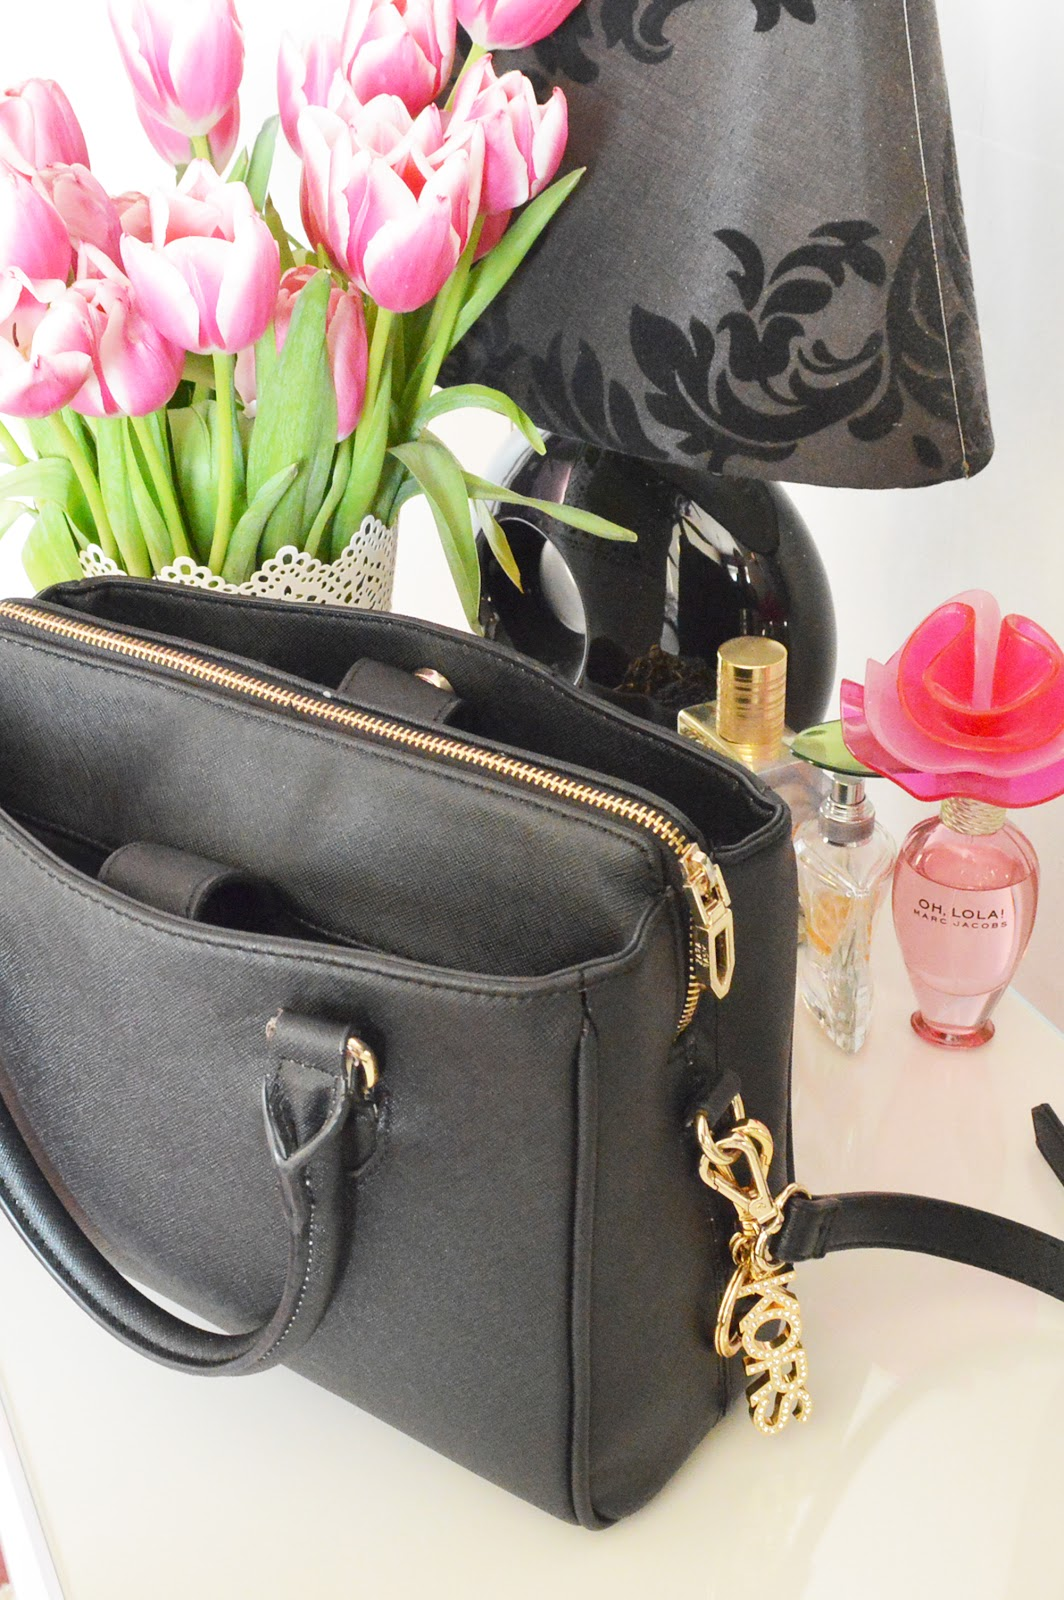 368c2b4d7fd Having a nosey into bloggers' bags is one of my favourite kinds of posts to  read, so I thought I'd do an updated look at what's currently in mine!